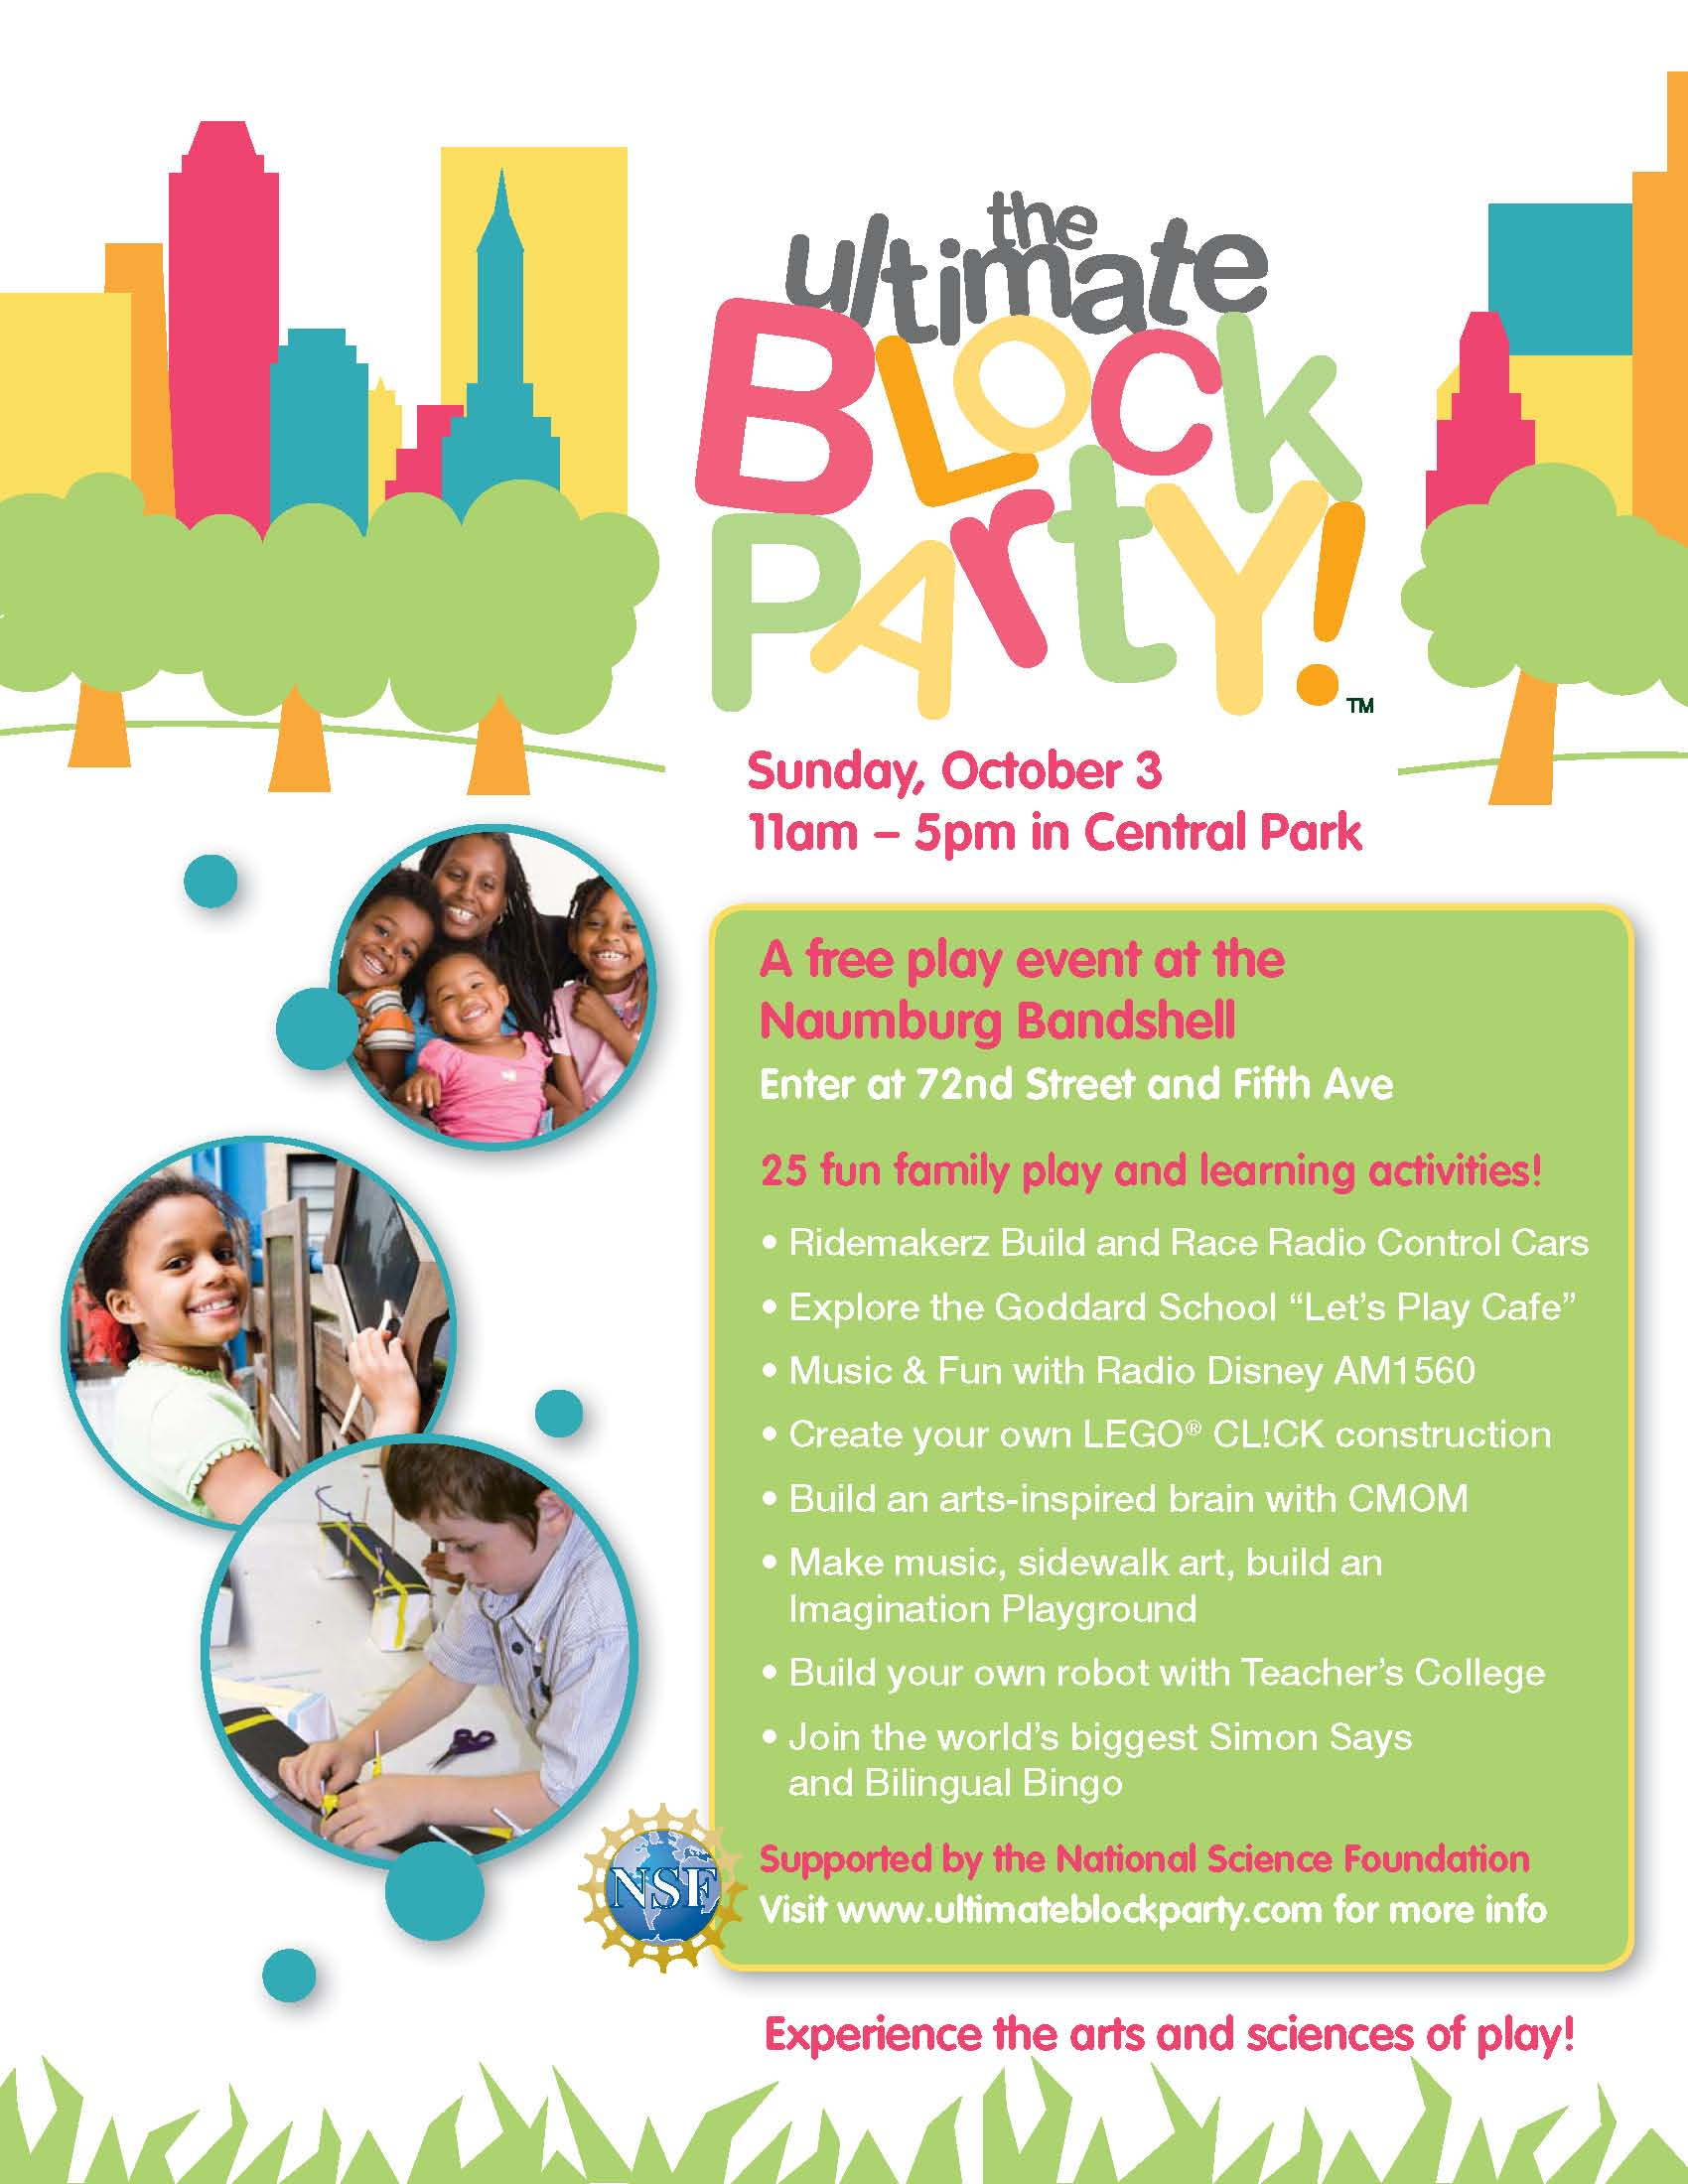 the ultimate block party flyer the ultimate block party s blog